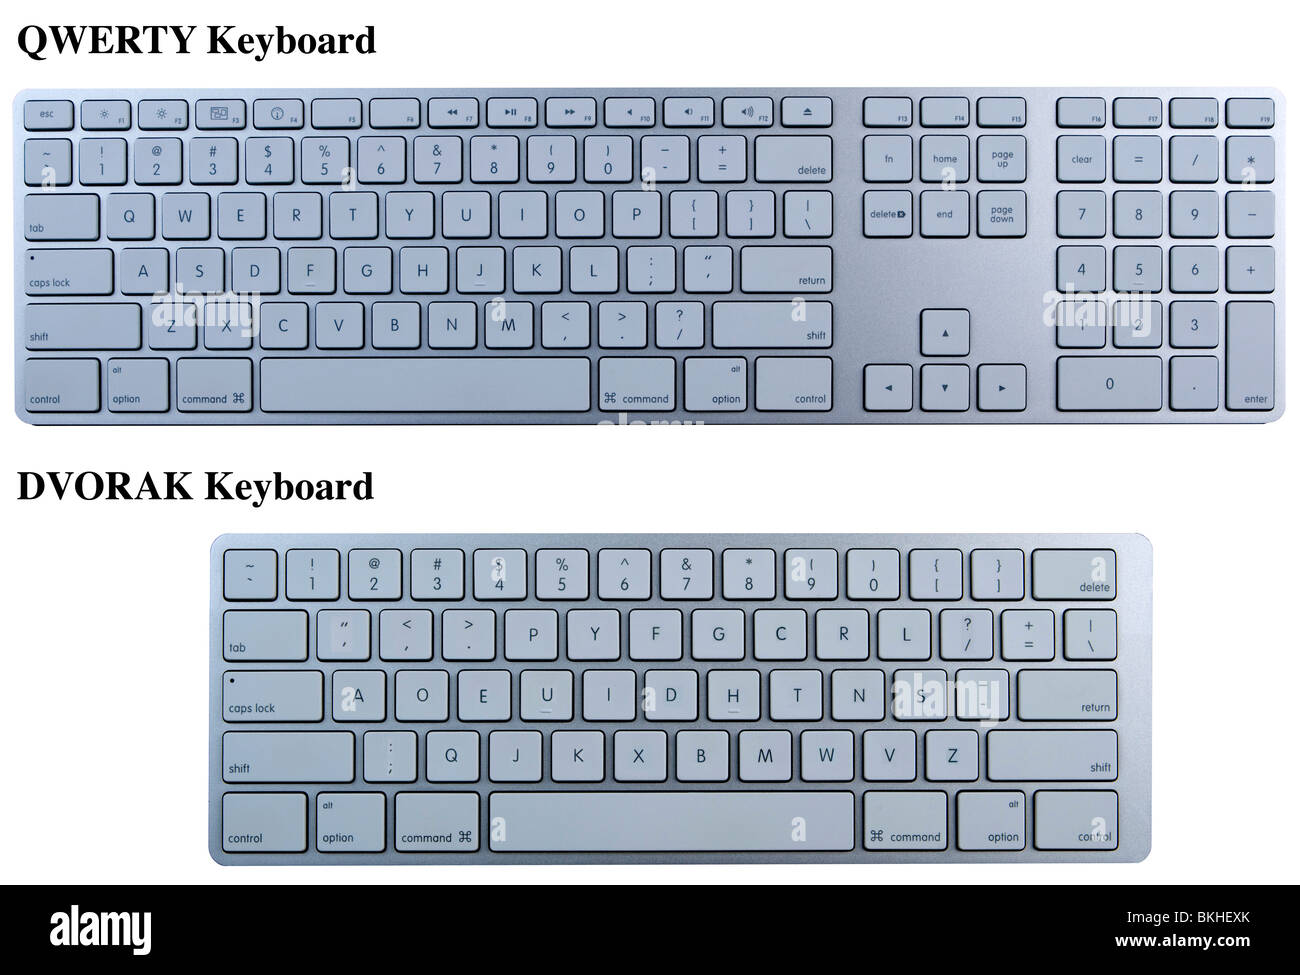 Whats the difference between a dvorak and a qwerty keyboard?